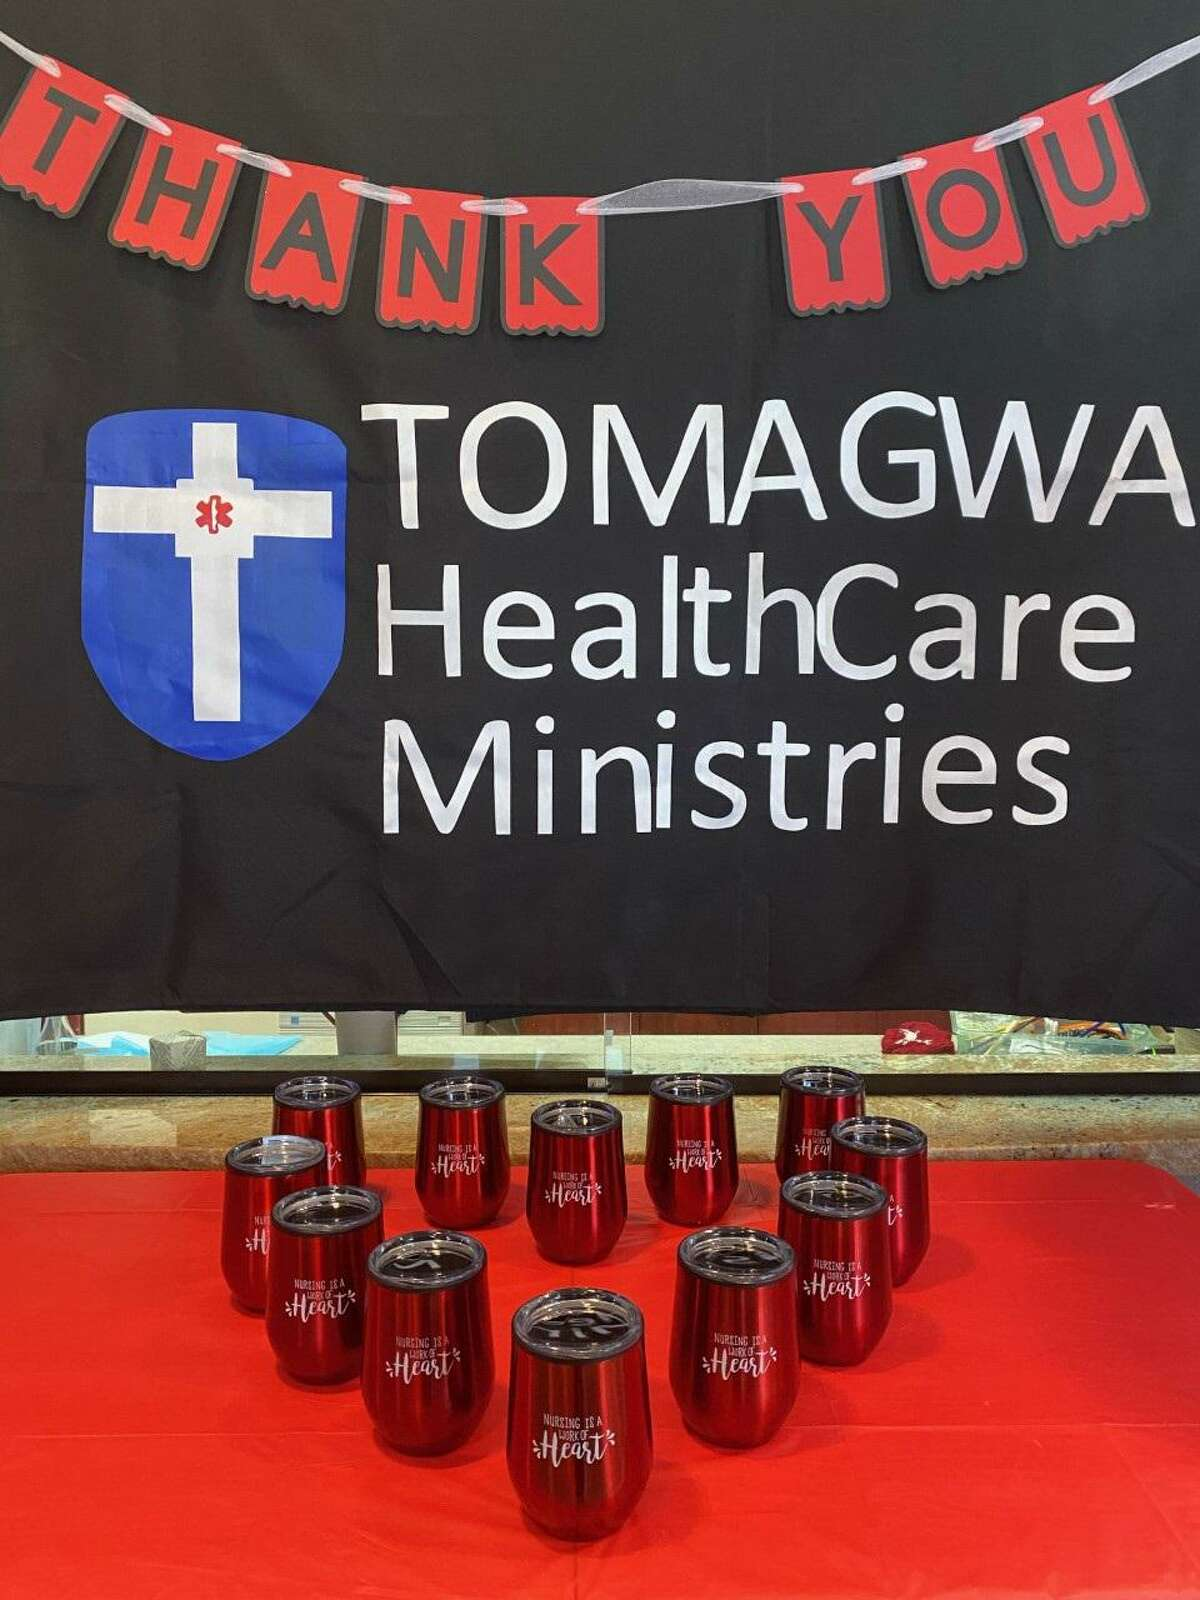 TOMAGWA HealthCare Ministries celebrated Nurses Week, May 6-12, by decorating their locations, passing out treats, fun tumblers, decorated cookies, and sharing words of thanks for the blessing that their nurses are.